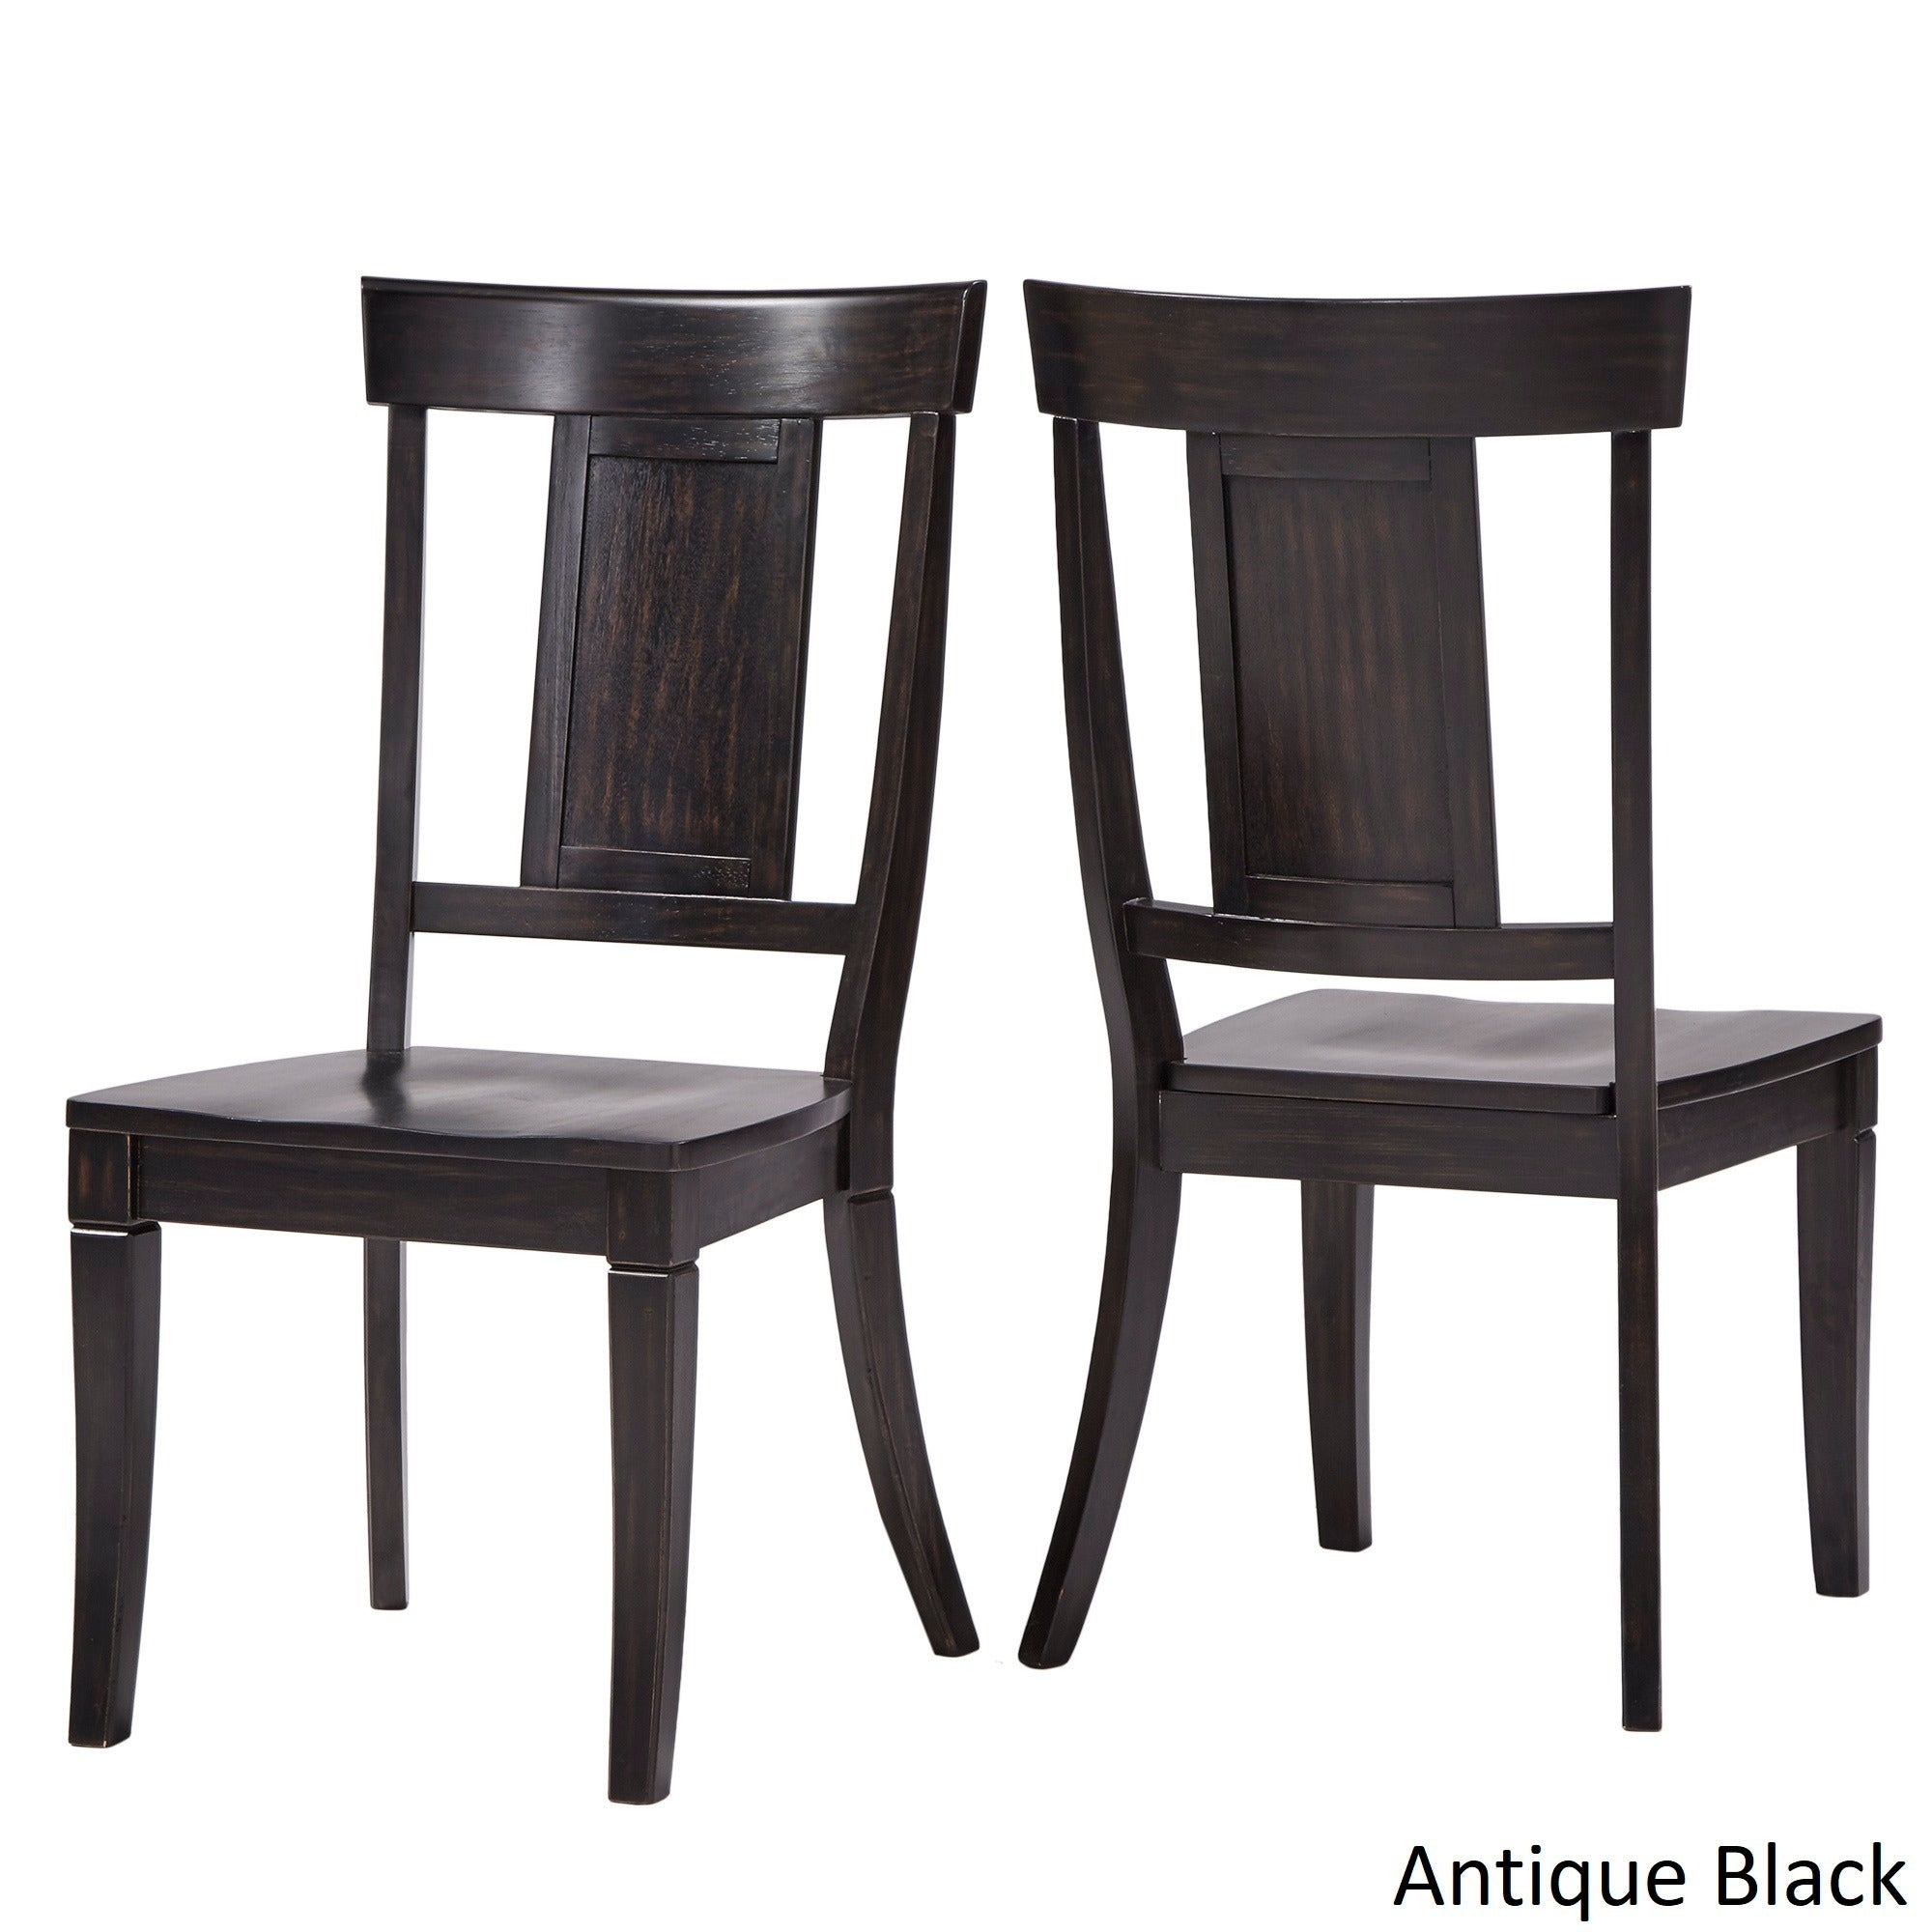 Buy black kitchen dining room chairs online at overstock com our best dining room bar furniture deals